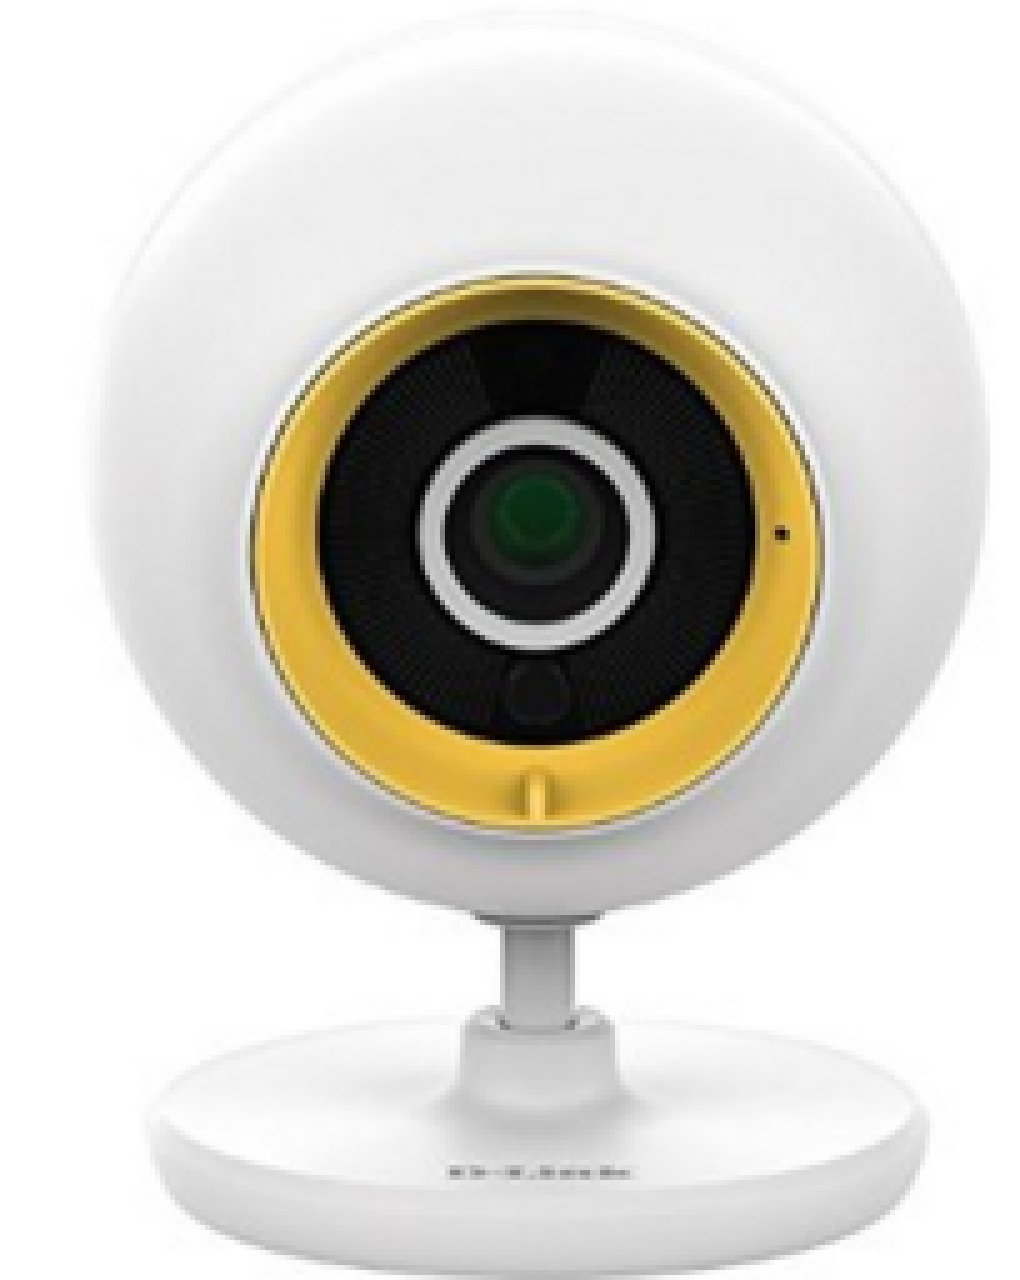 D-Link EyeOn DCS-800L Webcam / Security Monitor [並行輸入品] B019THSJ2U